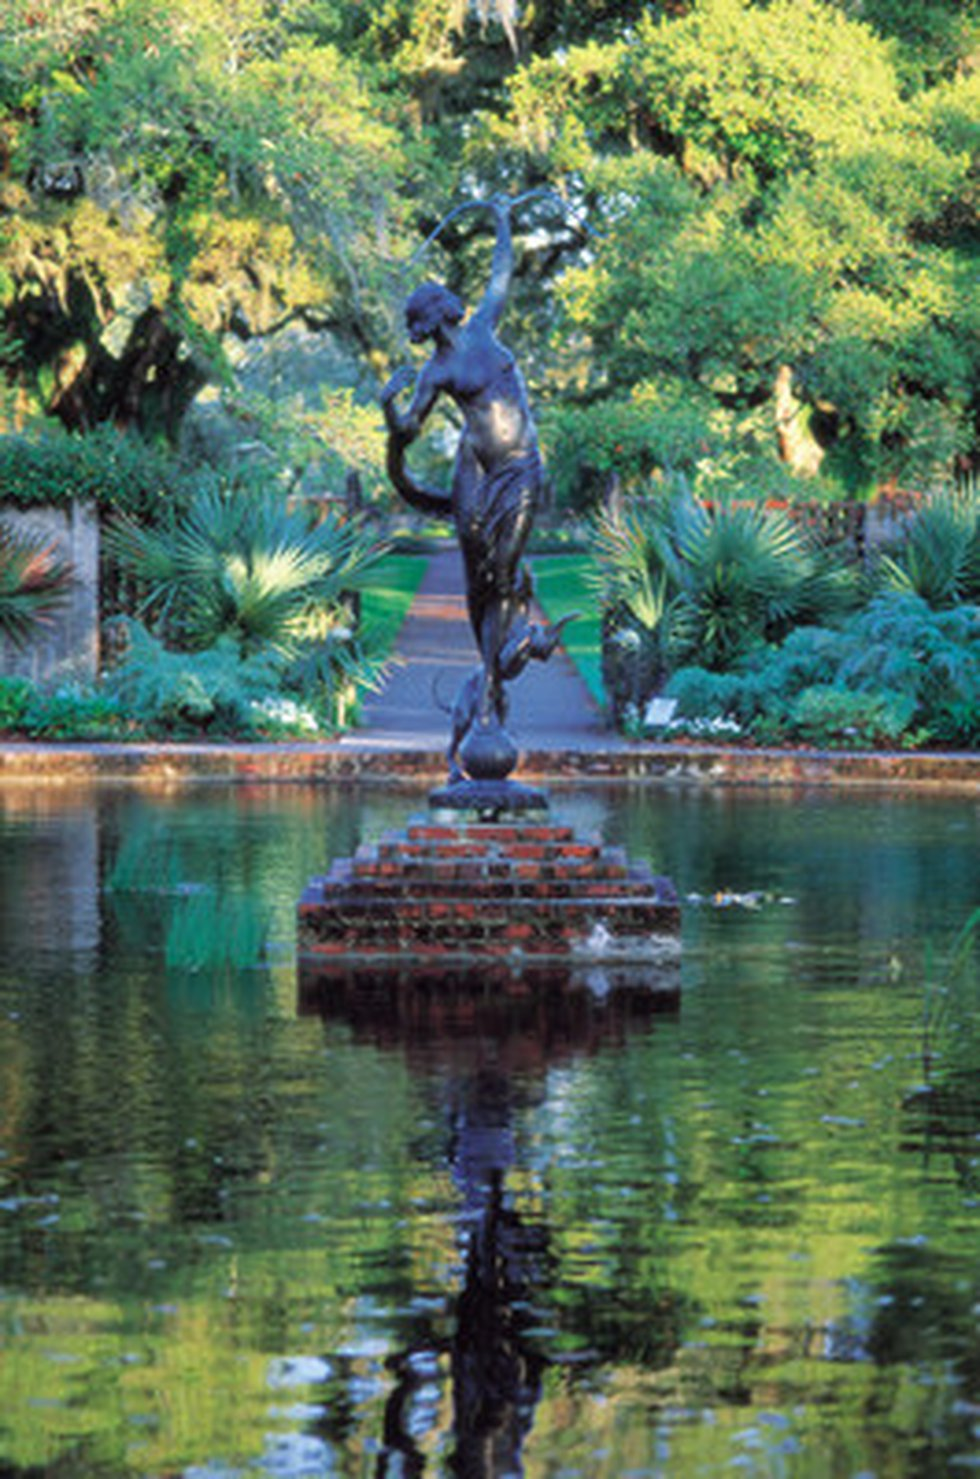 Home to what is considered the largest collection of American figurative sculpture in the...